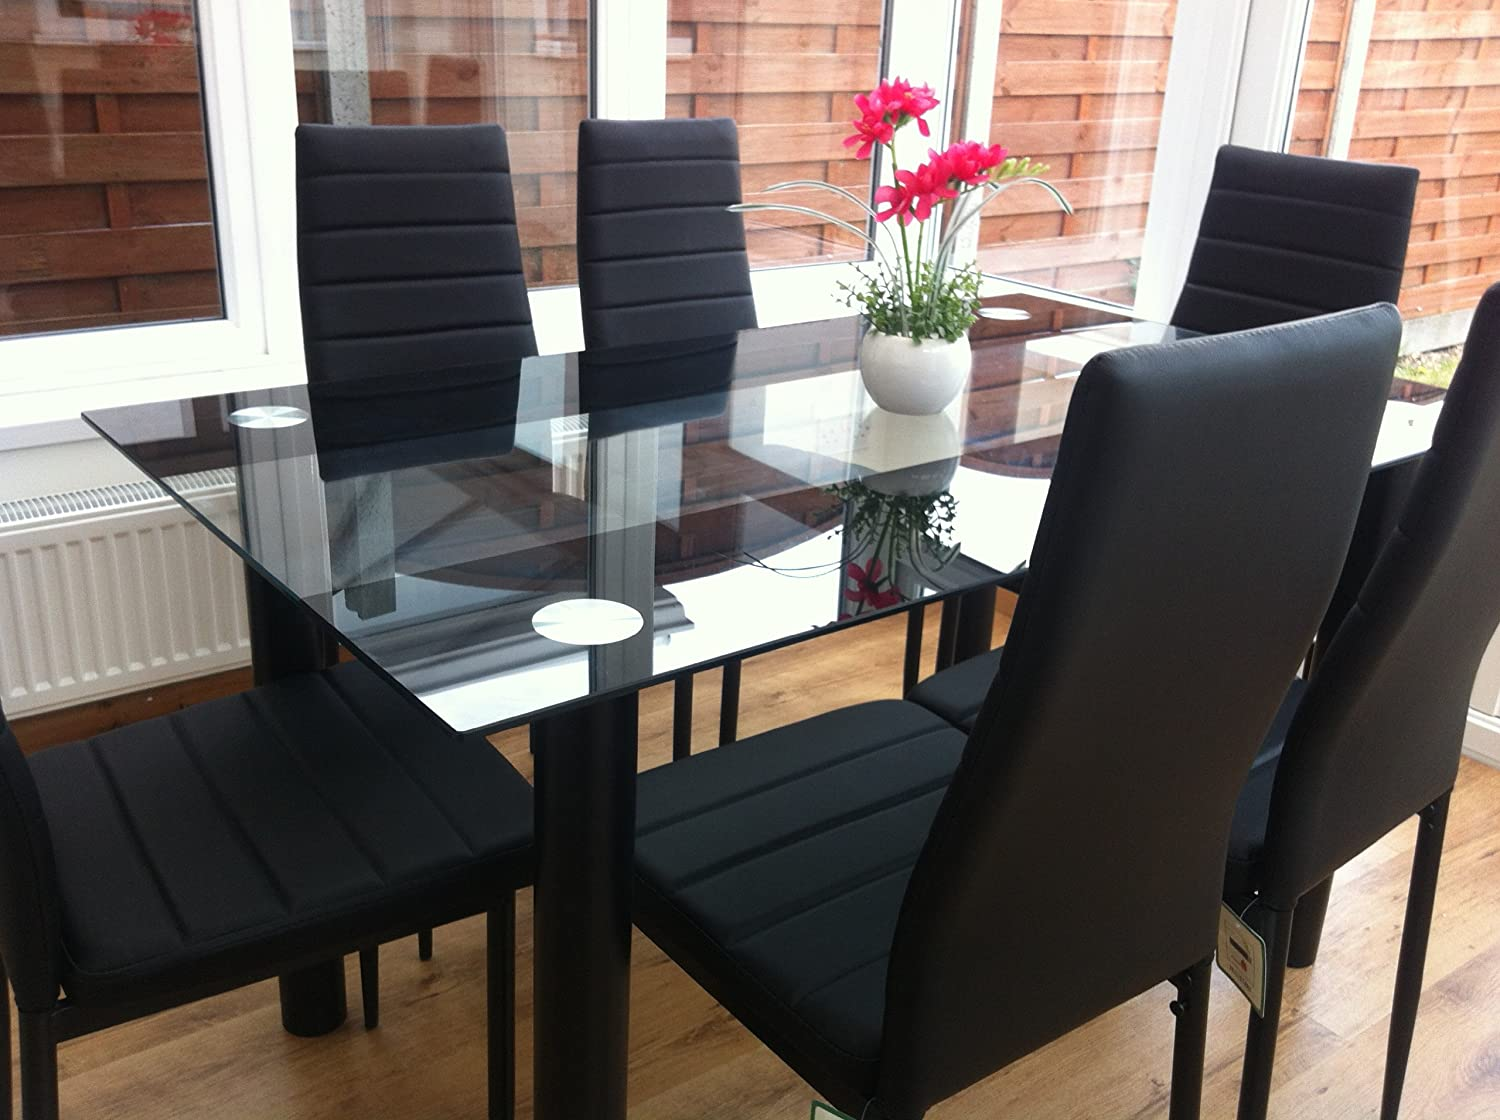 dining table sets. STUNNING GLASS BLACK DINING TABLE SET AND 6 FAUX LEATHER CHAIRS...: Amazon.co.uk: Kitchen \u0026 Home Dining Table Sets